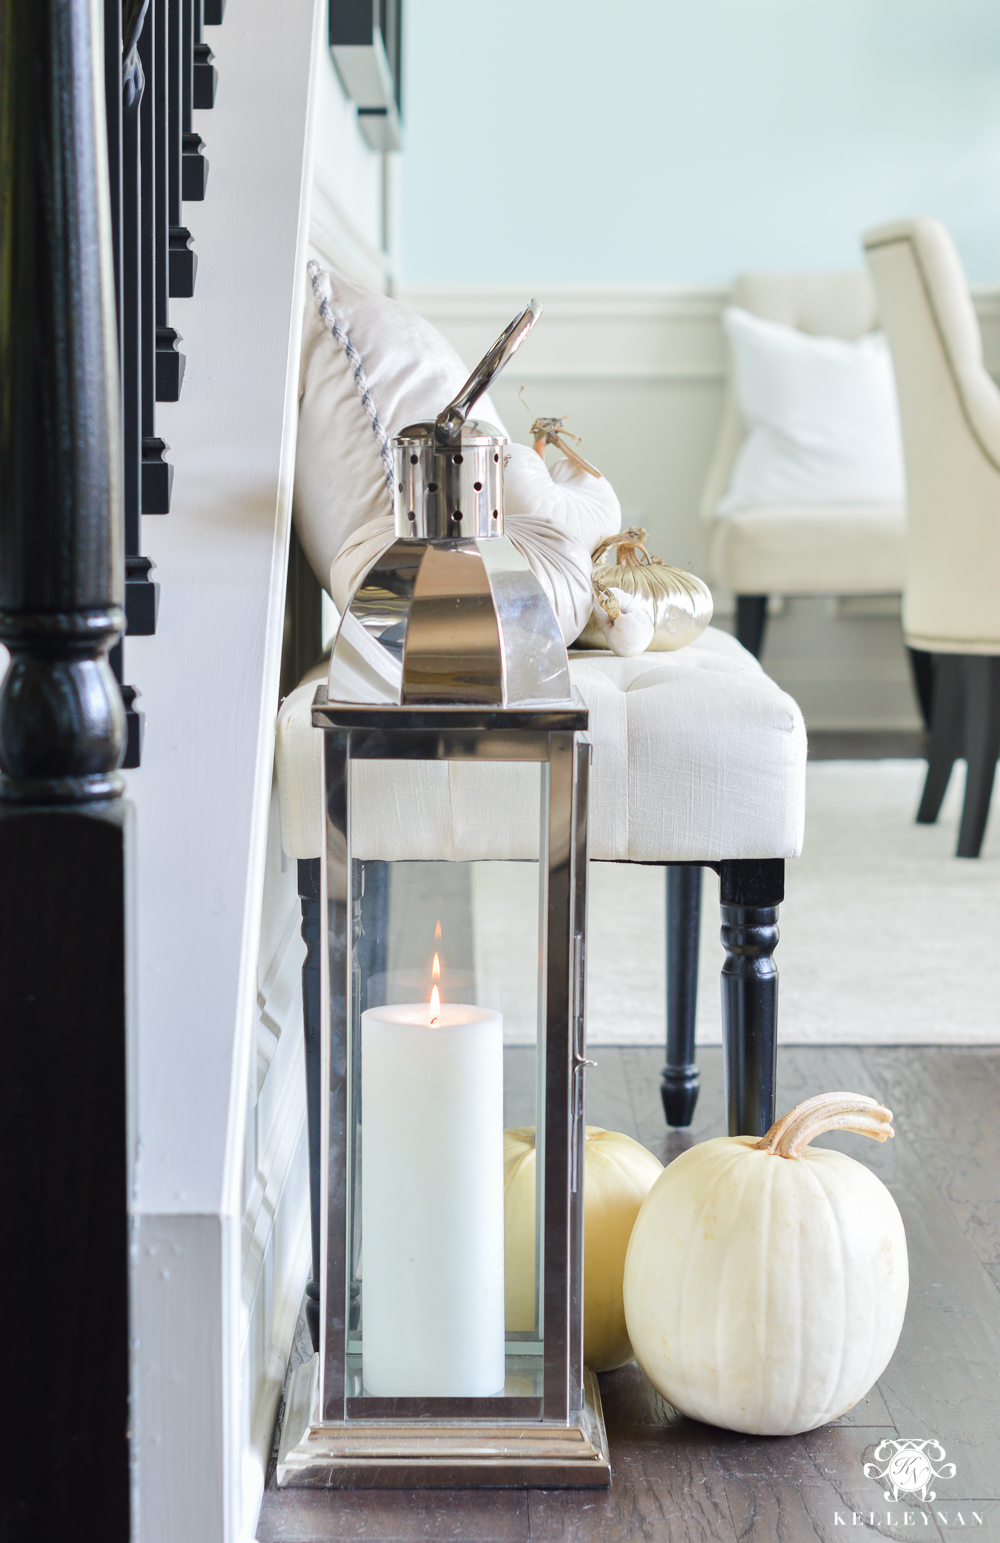 2017 Fall Home Tour with Yellow and Orange Leaves- entry lantern and pumpkins